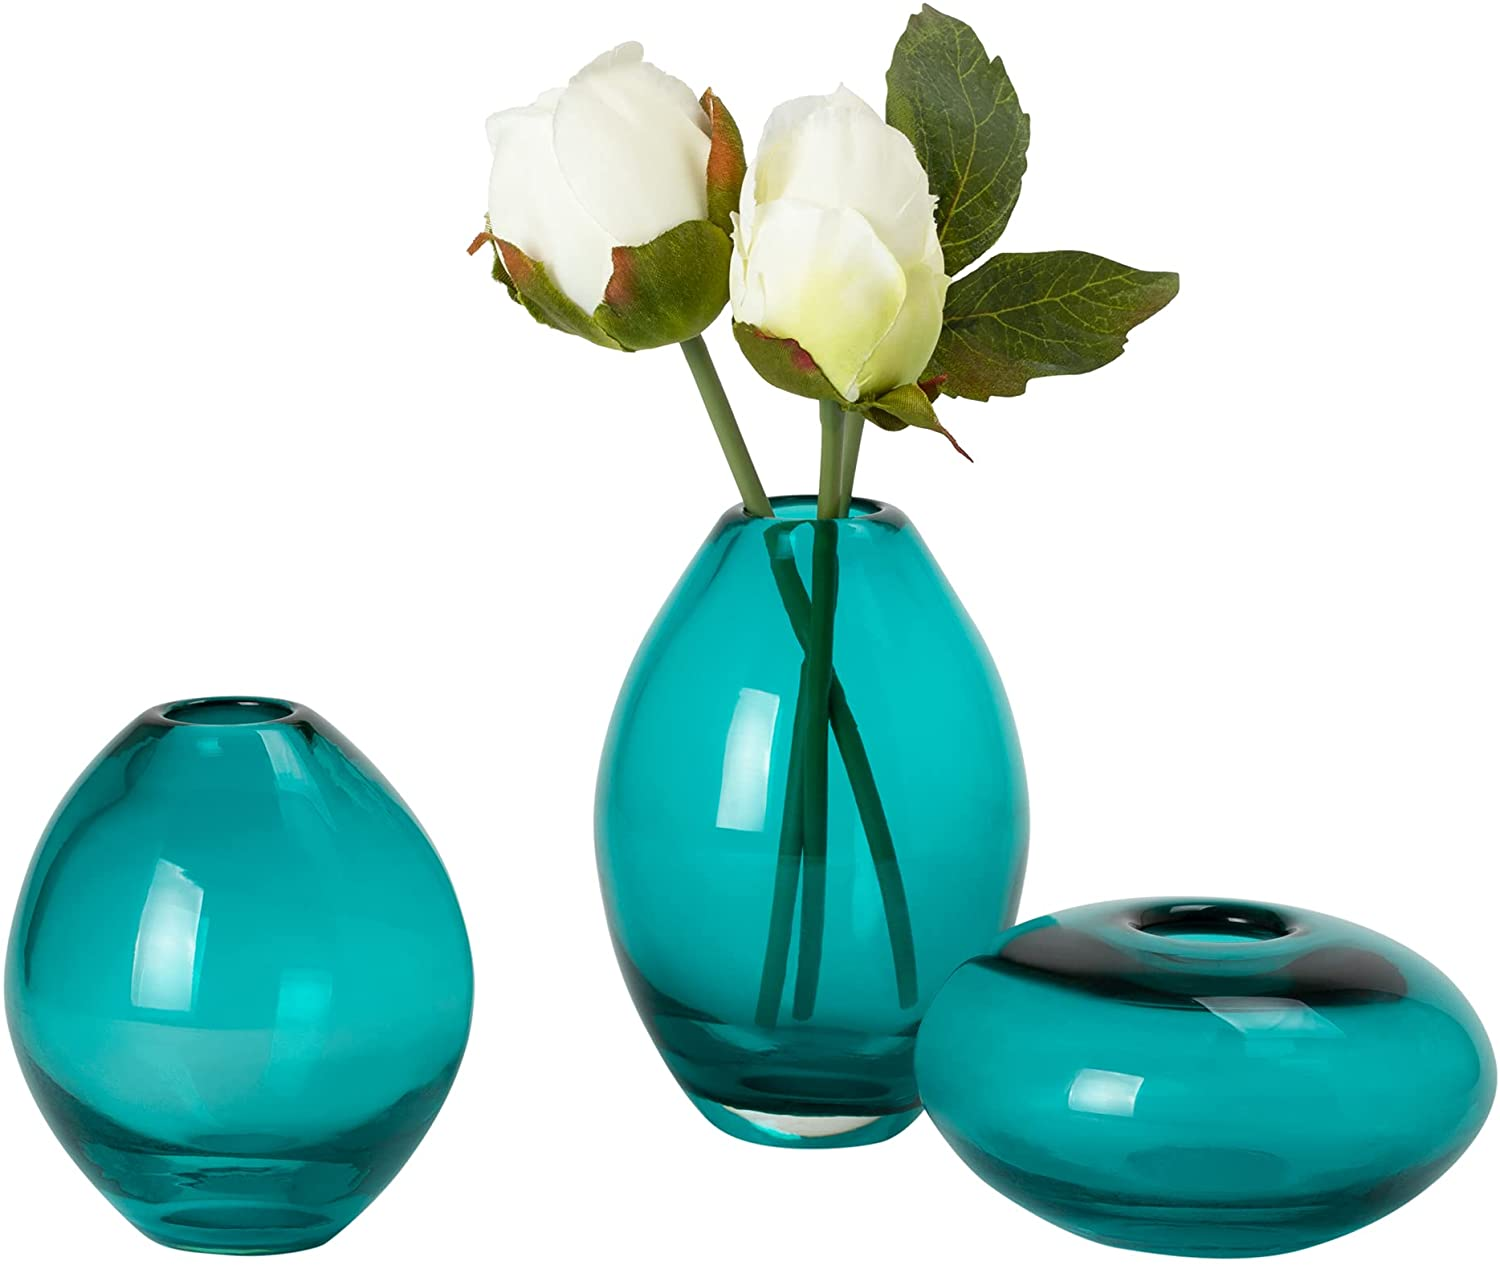 Daily bargain sale Houston Mall Torre Tagus 901431 Mini Lustre Vases Assorted Turquoise Set